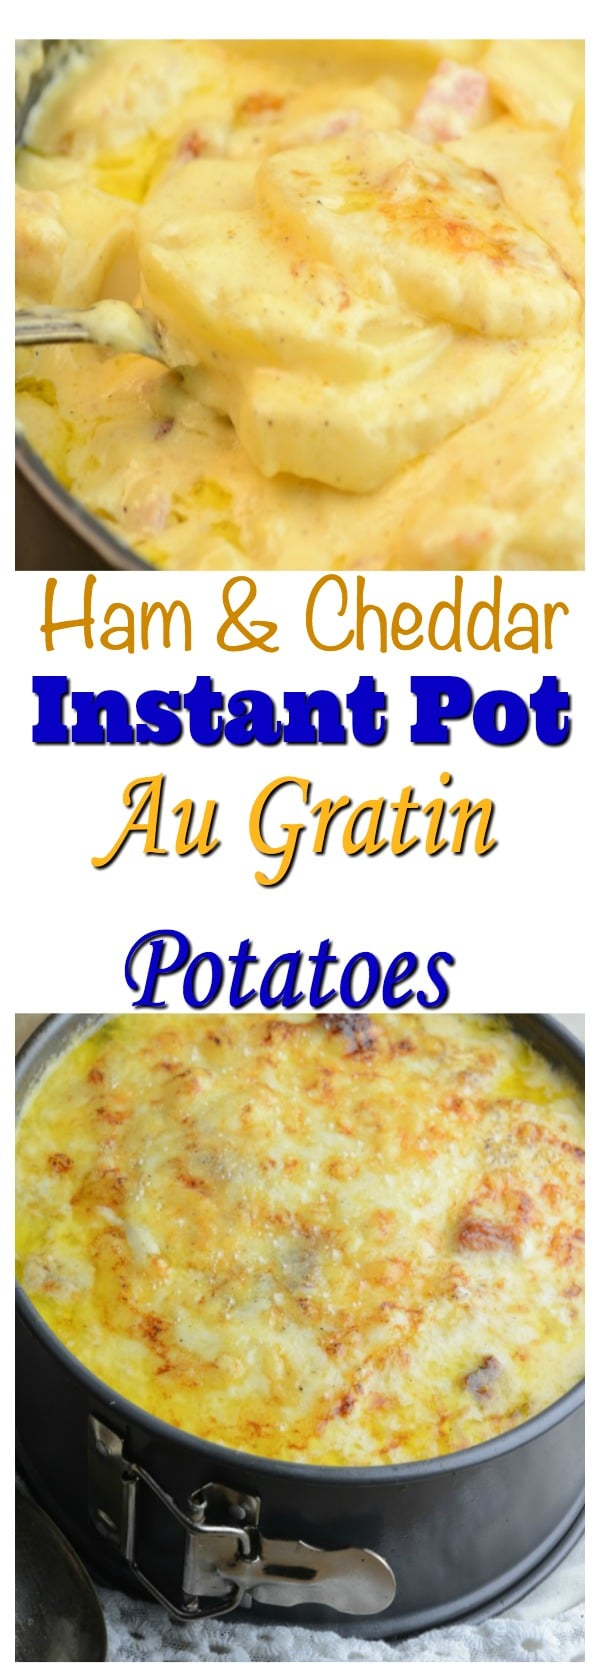 Ham & Chedder Instant Pot Augratin Potatoes